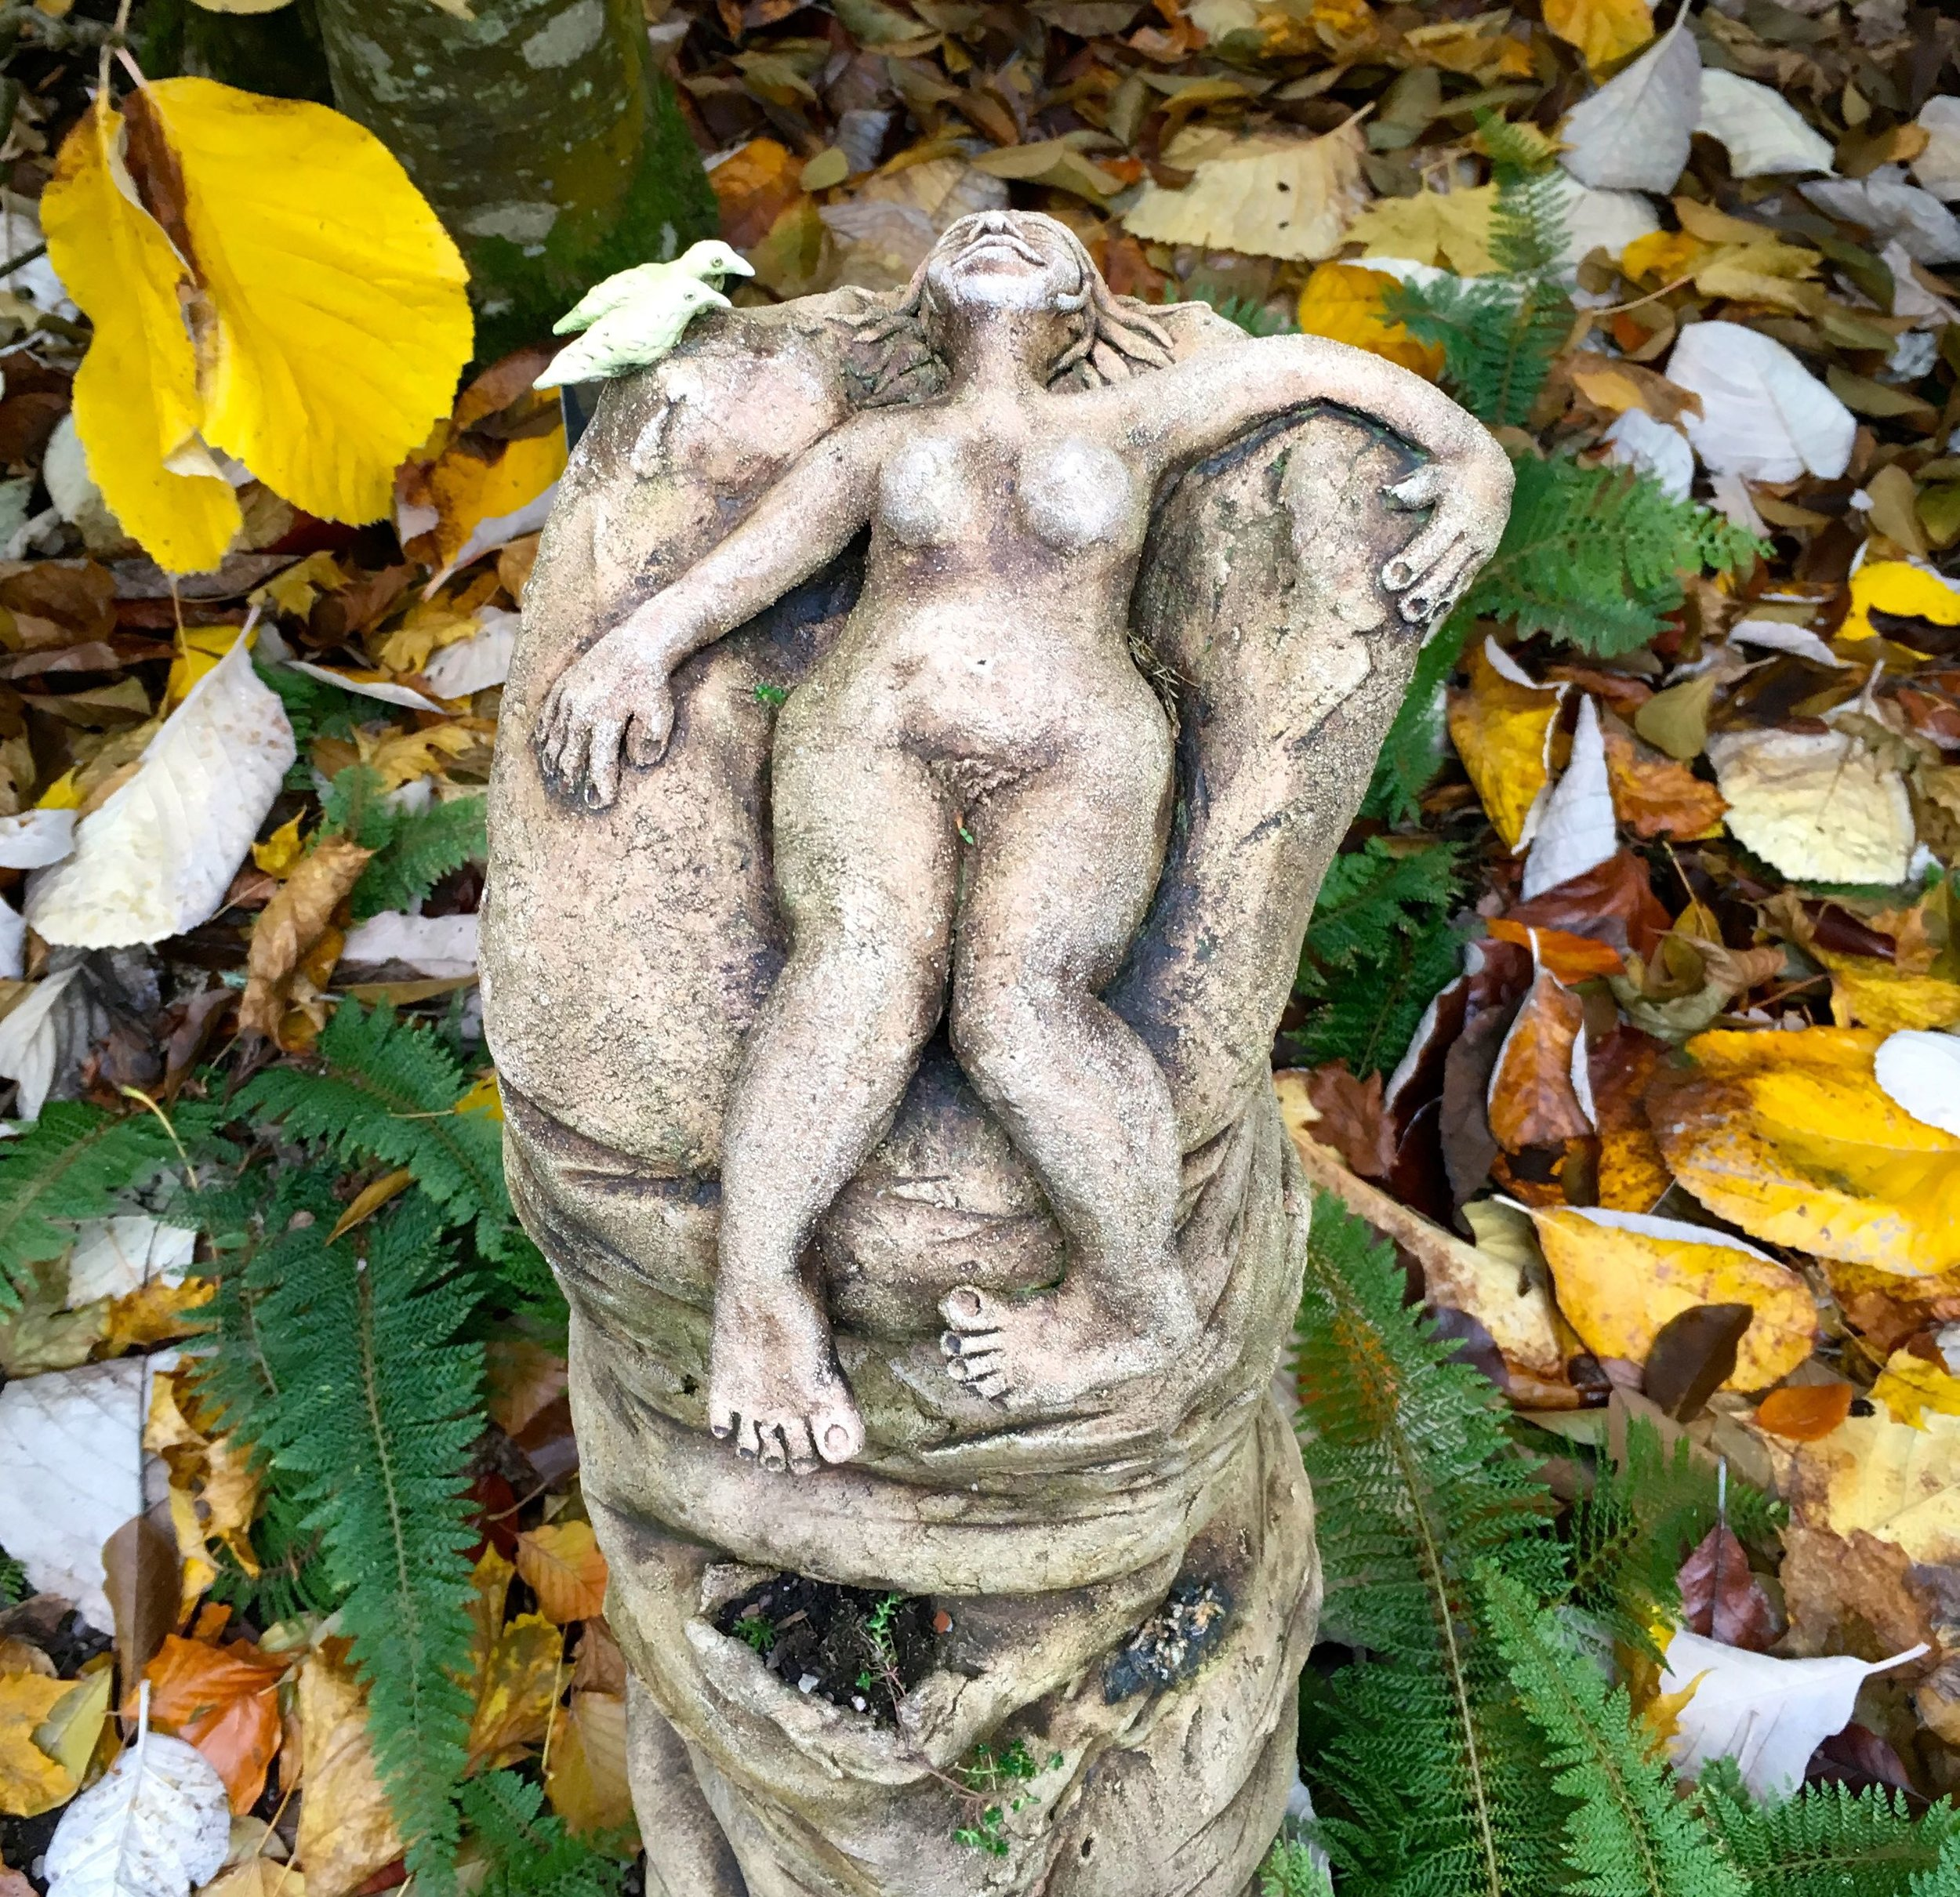 A sculpture relaxing in RHS Rosemoor